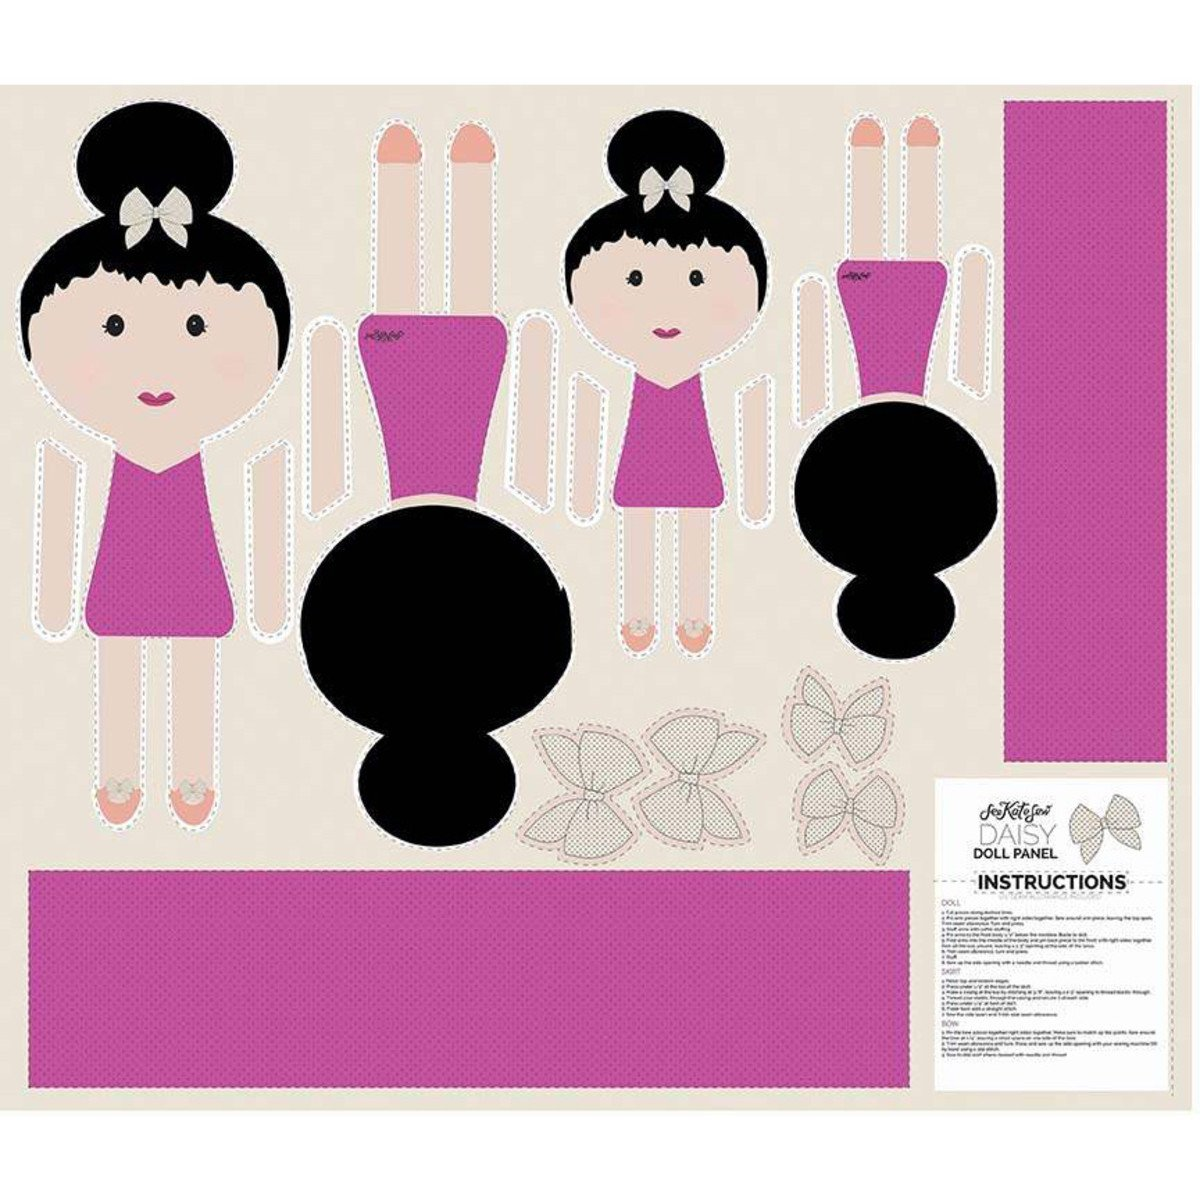 Riley Blake Top Knot Doll Panels